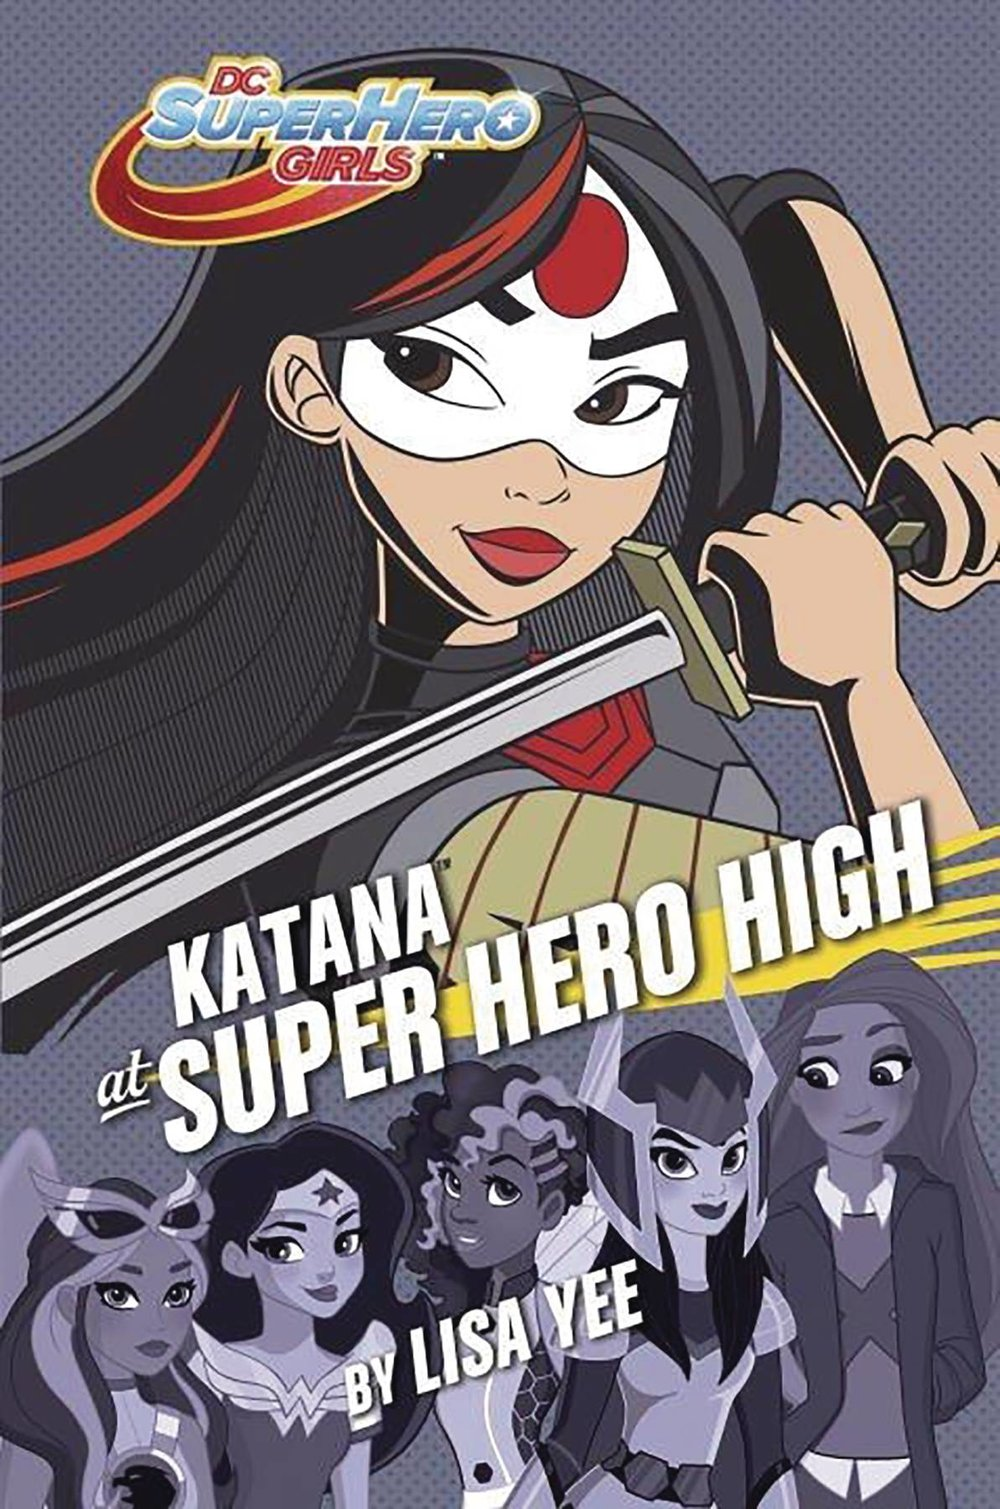 DC SUPER HERO GIRLS YR HC 4 KATANA AT SUPER HERO HIGH.jpg